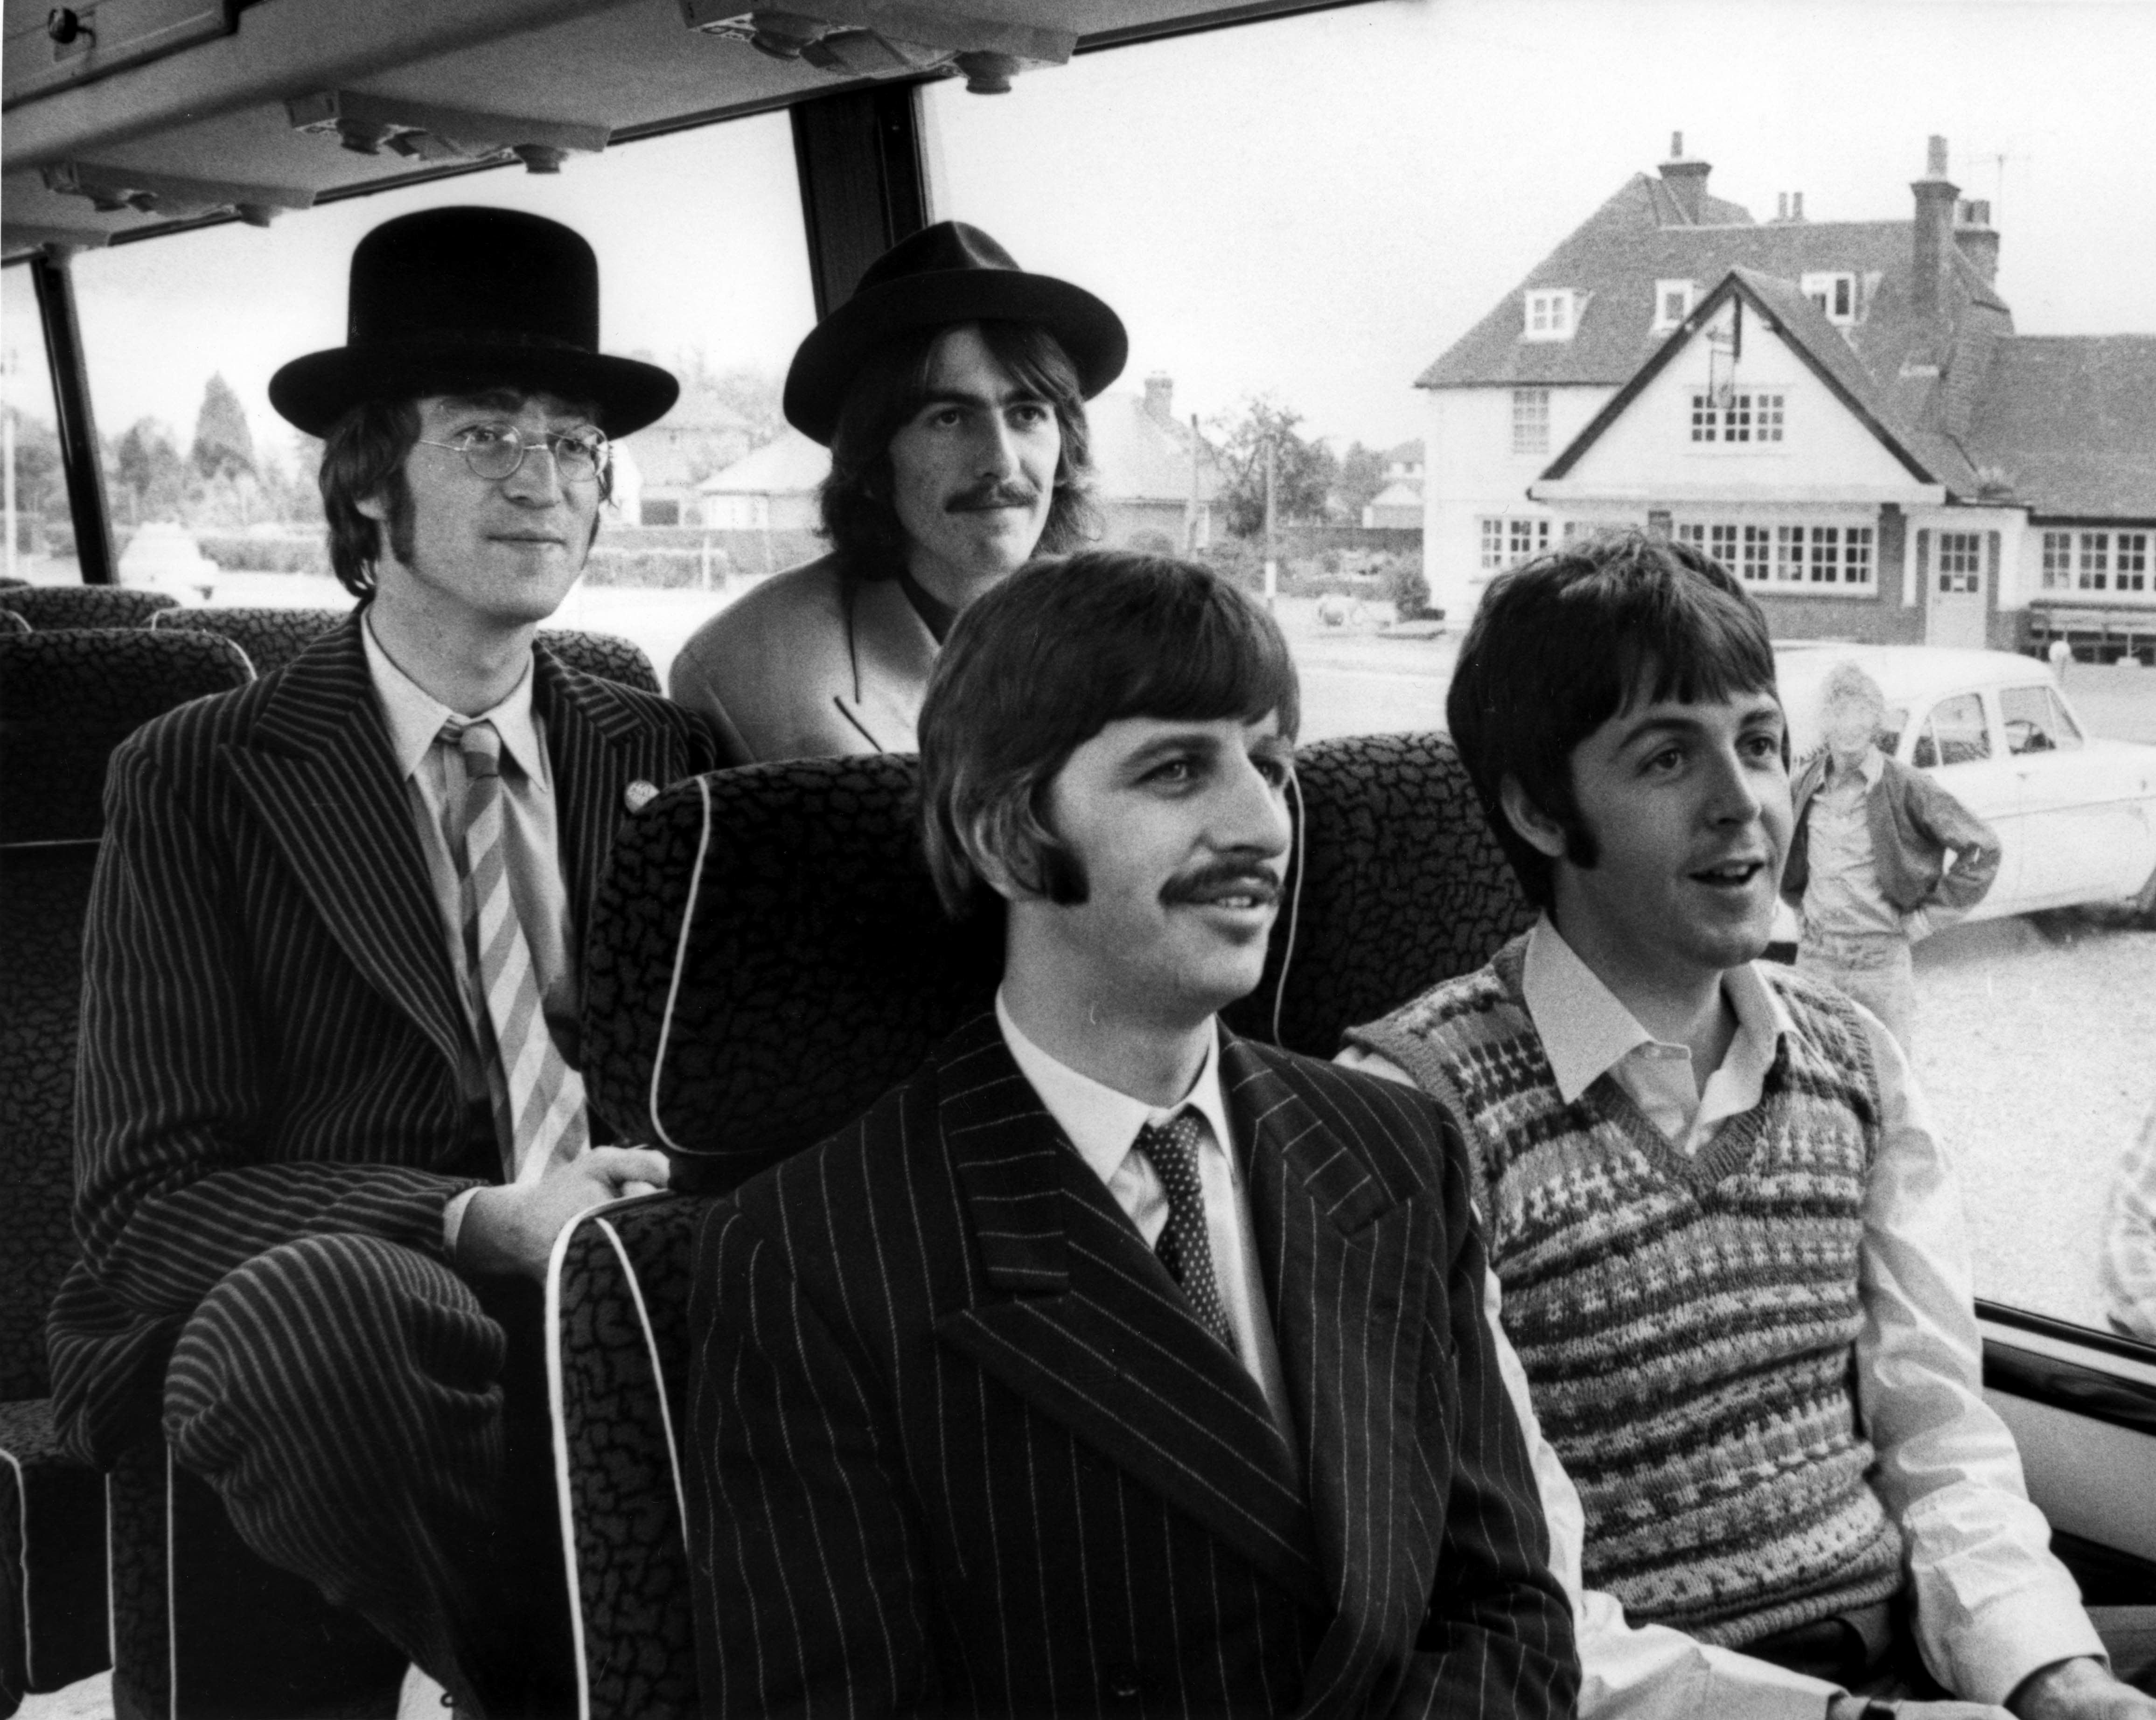 UNITED KINGDOM - SEPTEMBER 13:  Photo of BEATLES and MAGICAL MYSTERY TOUR; L-R. John Lennon, George Harrison, Ringo Starr, Paul McCartney - posed group shot, on bus, during filming of Magical Mystery Tour  (Photo by Cummings Archives/Redferns)